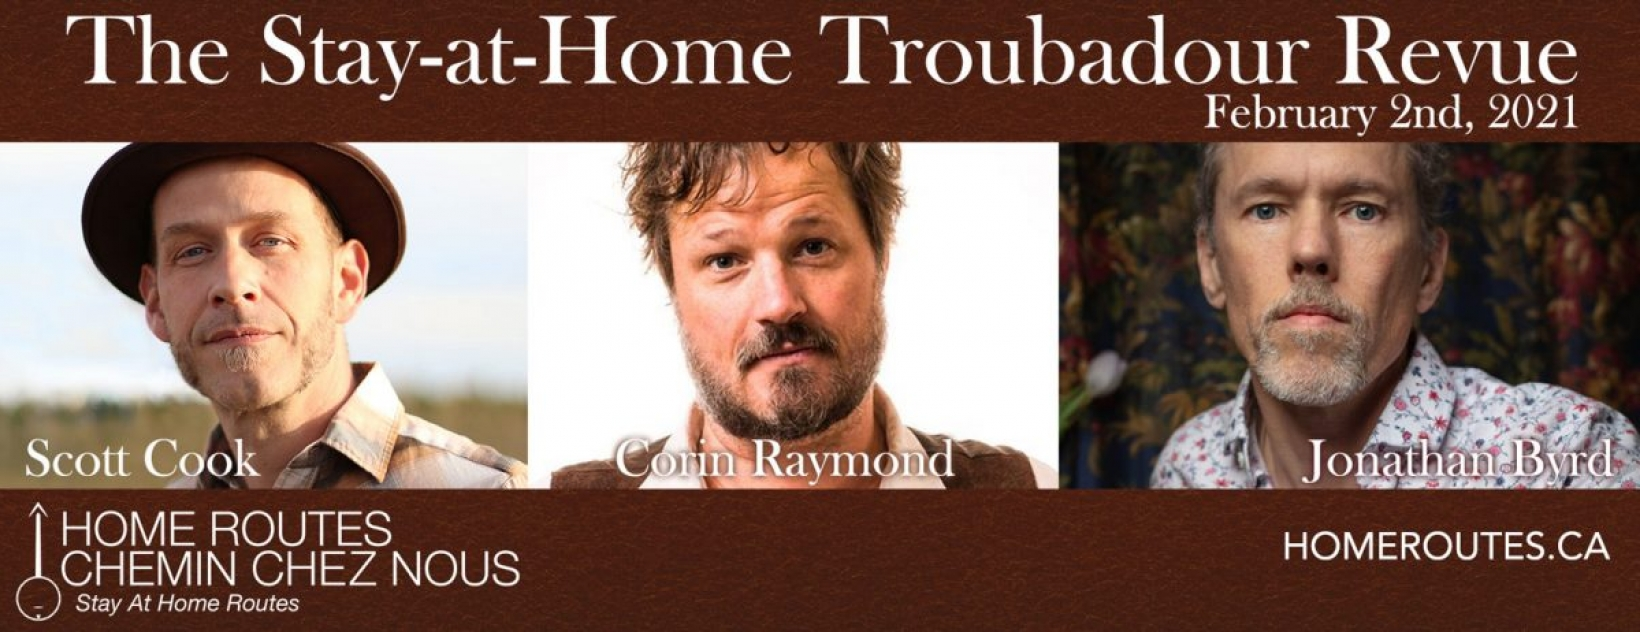 The-Stay-at-Home-Troubadour-Revue-home-routes-scott-cook-corin-raymond-jonathan-byrd-1920×731